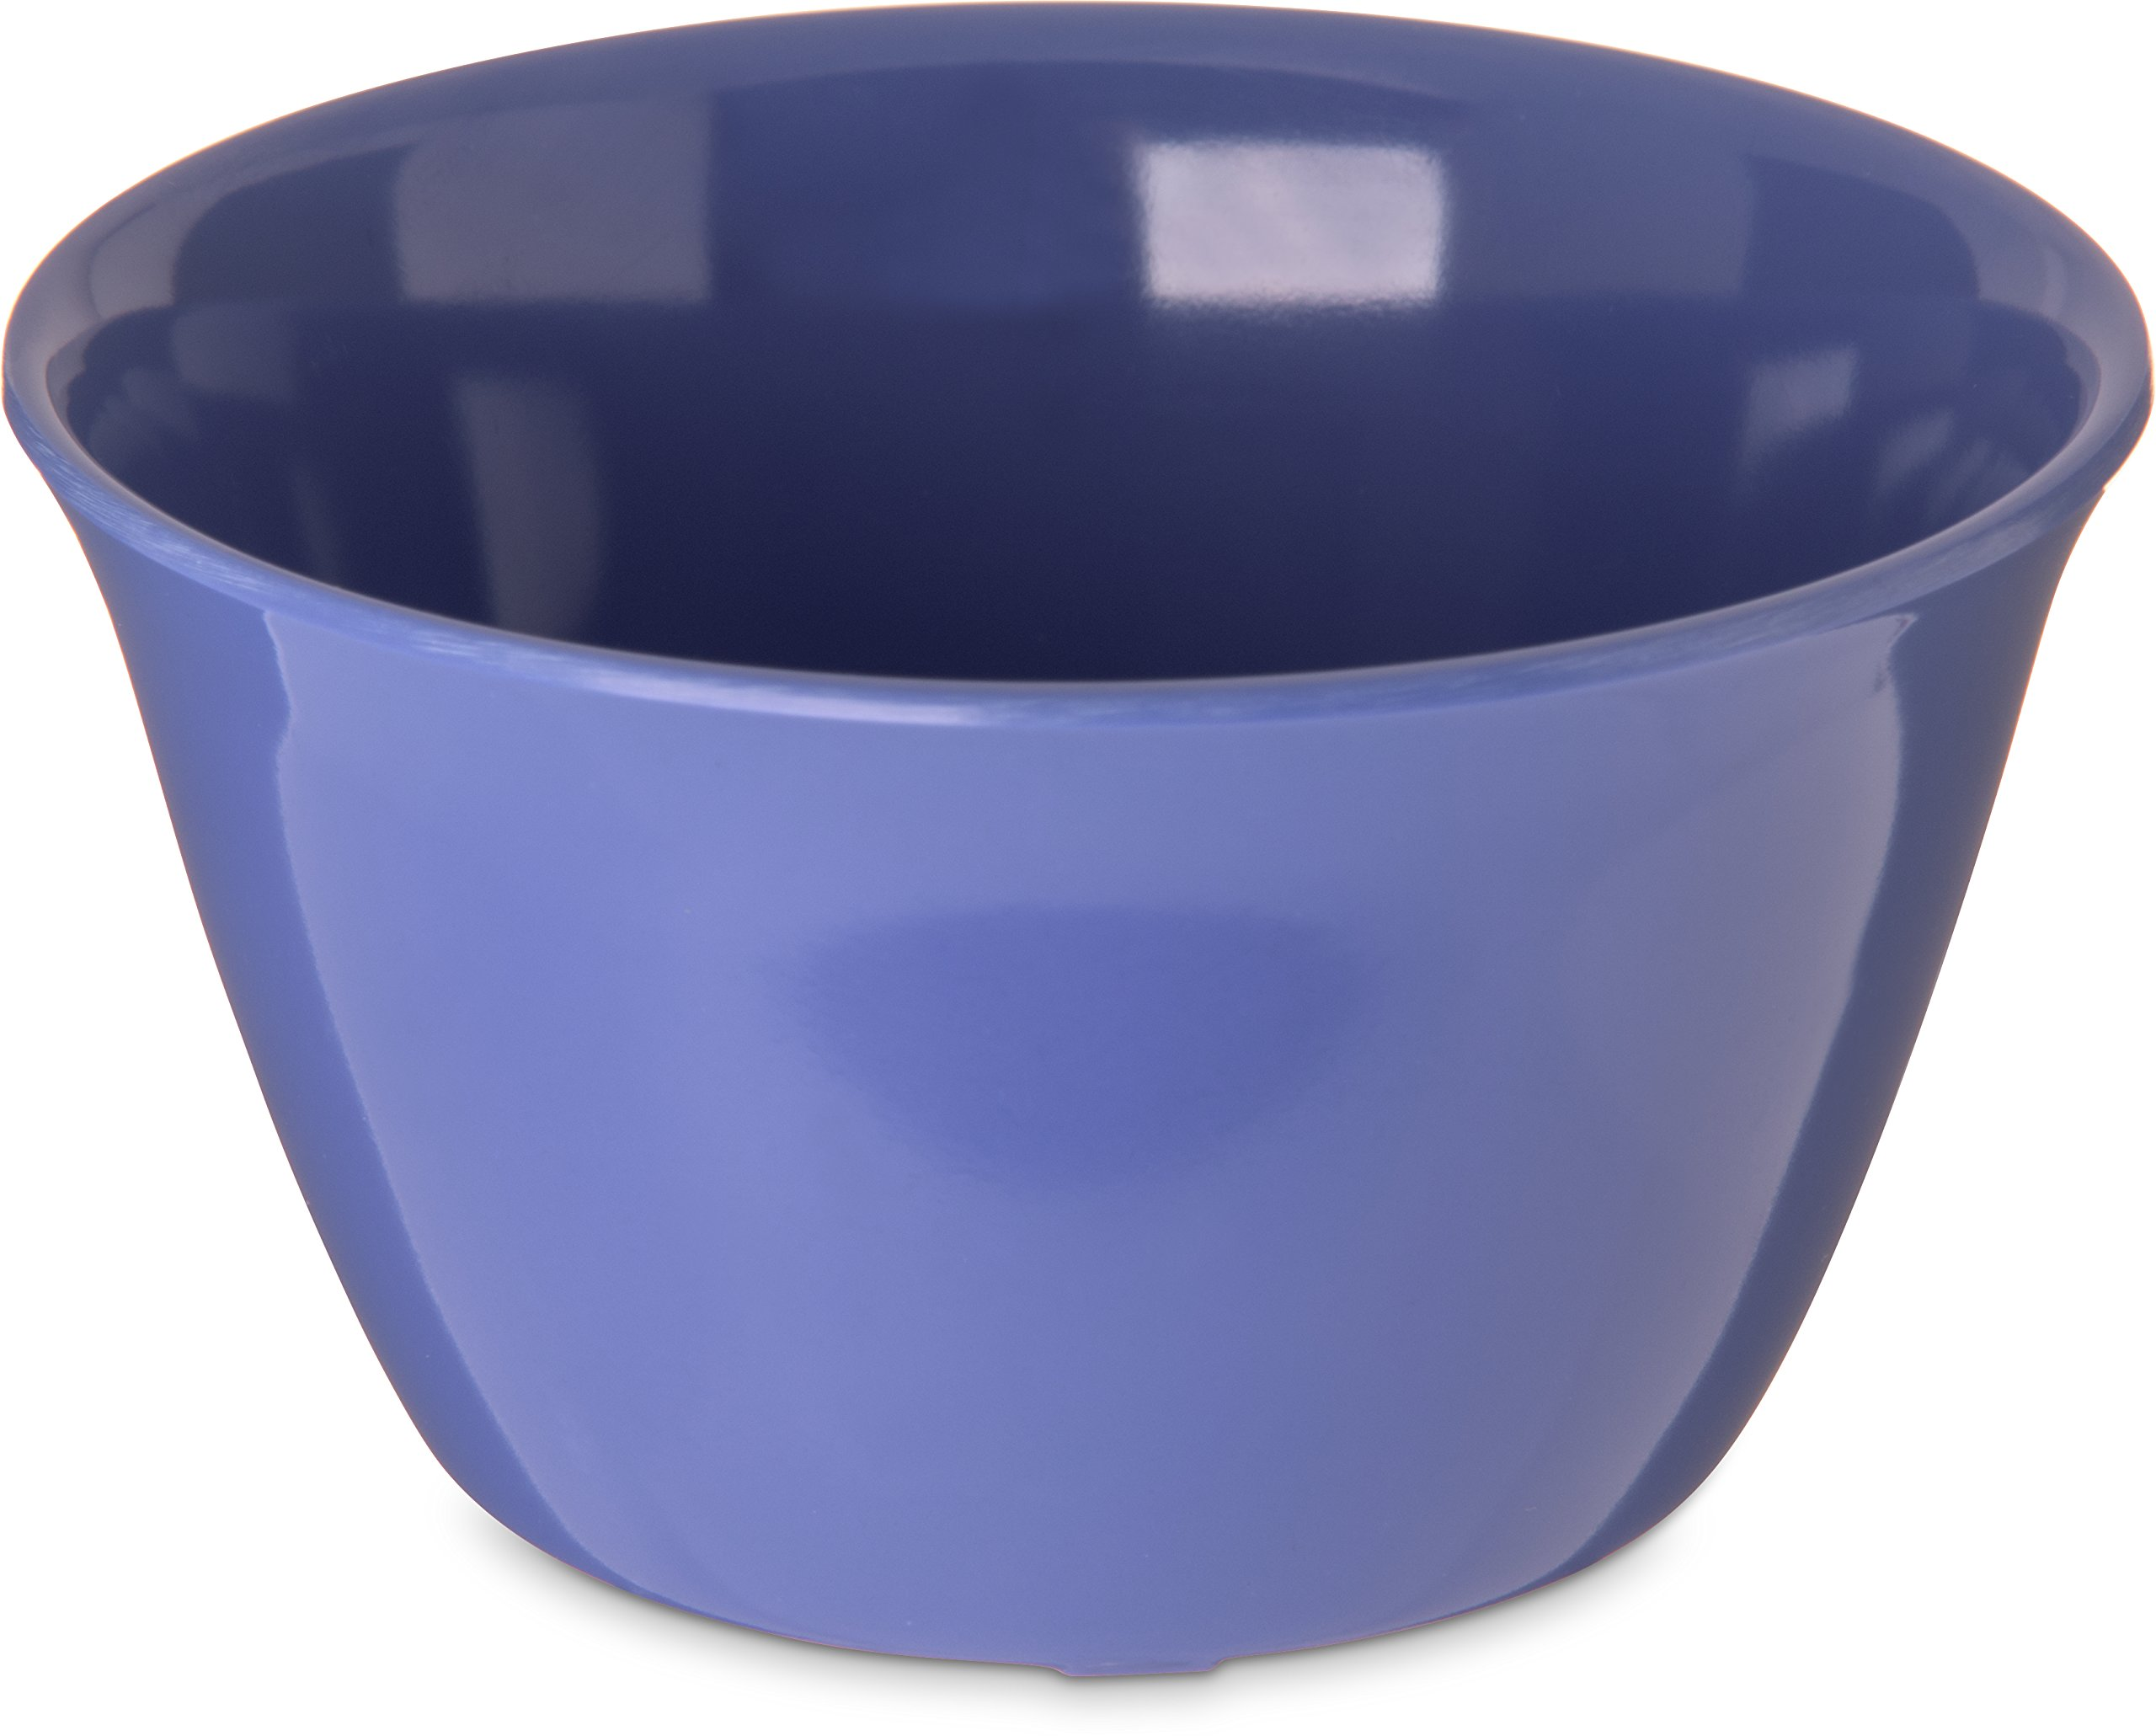 Carlisle 4354014 Dallas Ware Melamine Bouillon Cup, 8-oz. Capacity, 3.84 x 2.15'', Blue (Case of 24)